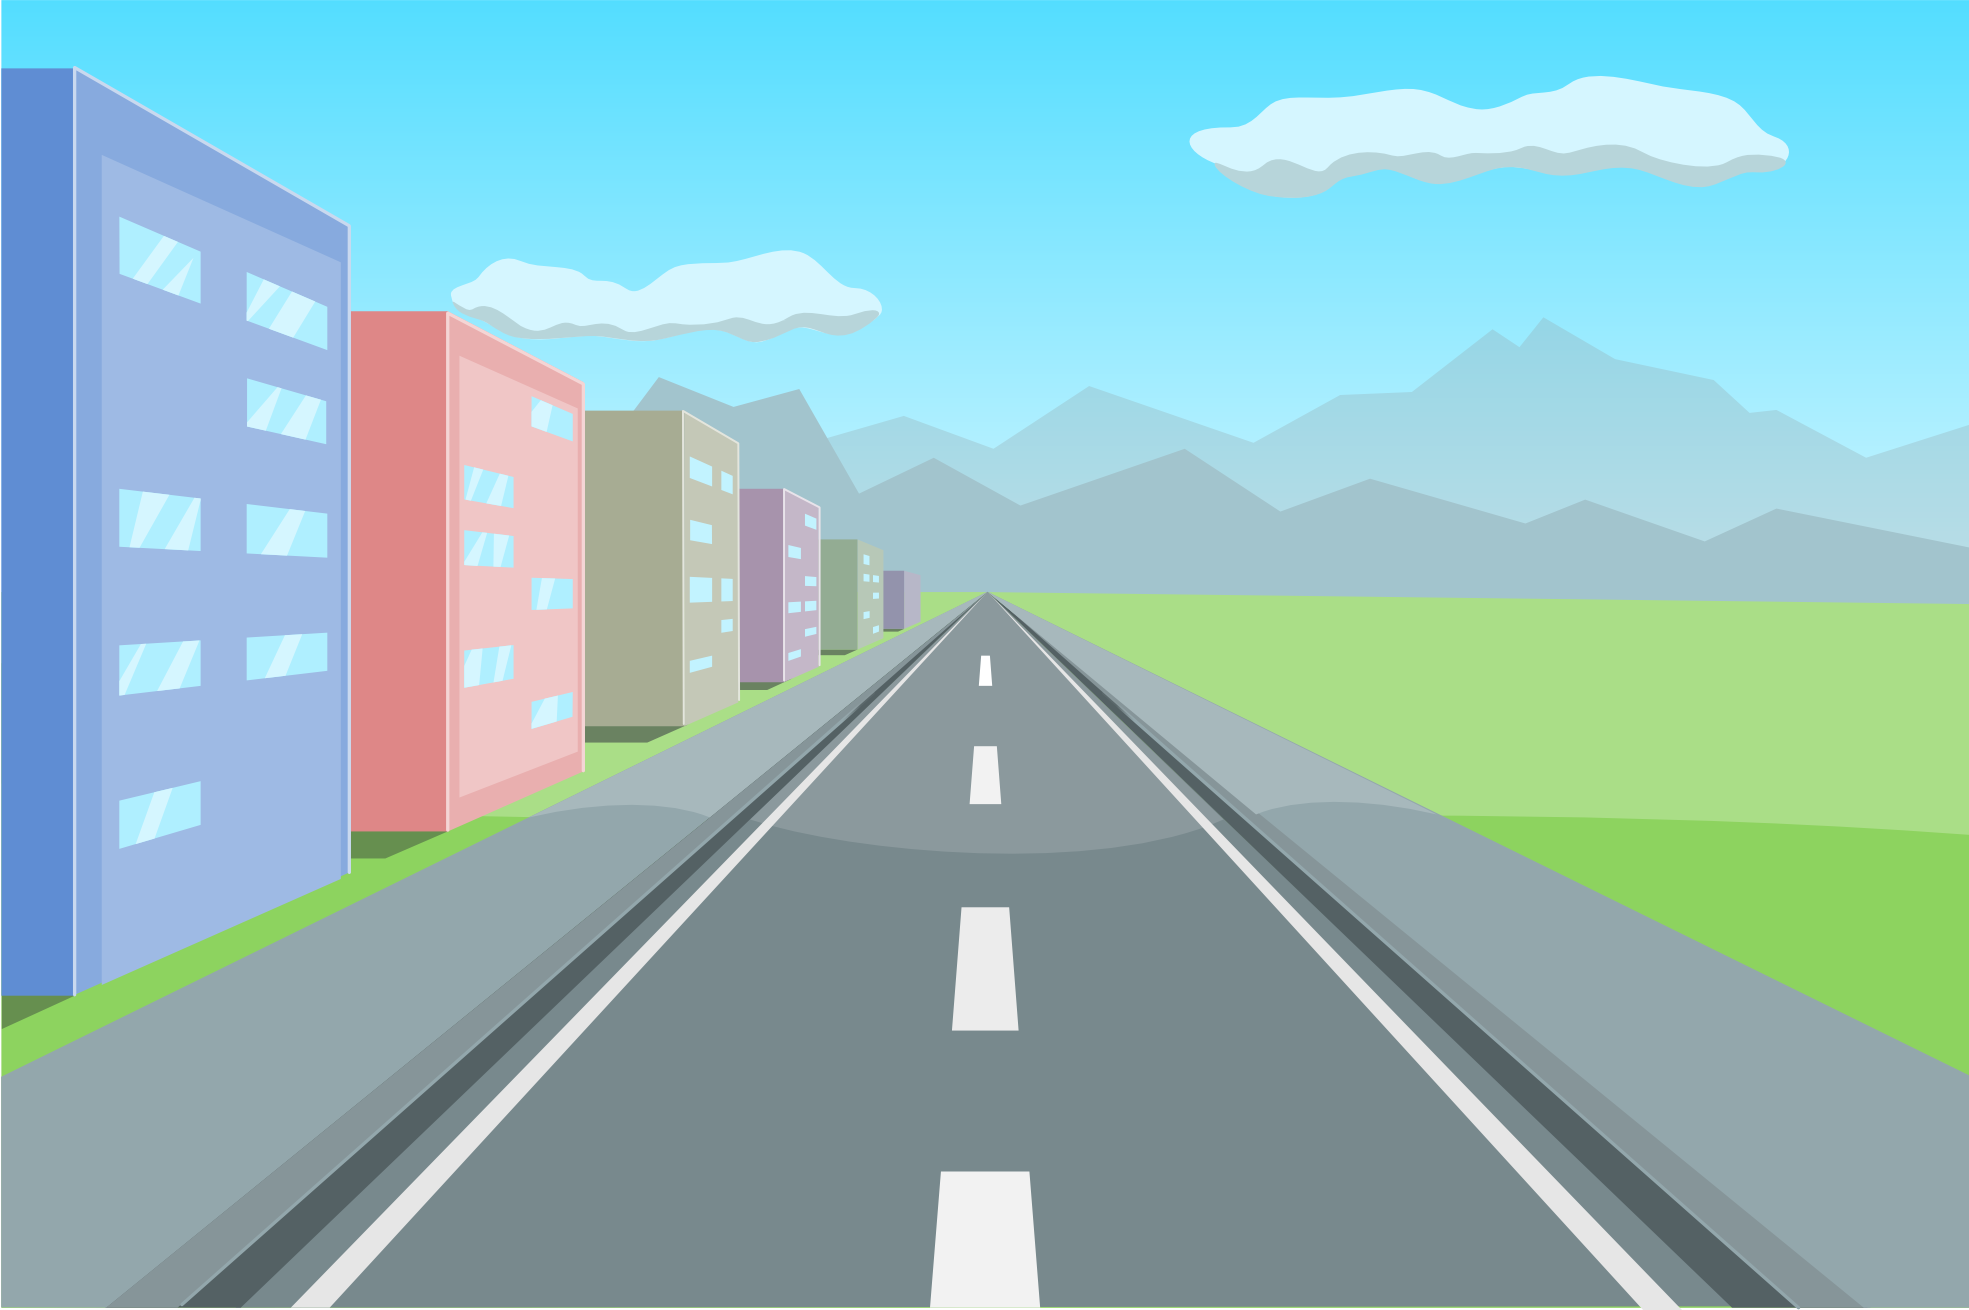 pin Iphone clipart horizontal #2 - PNG Horizontal Road